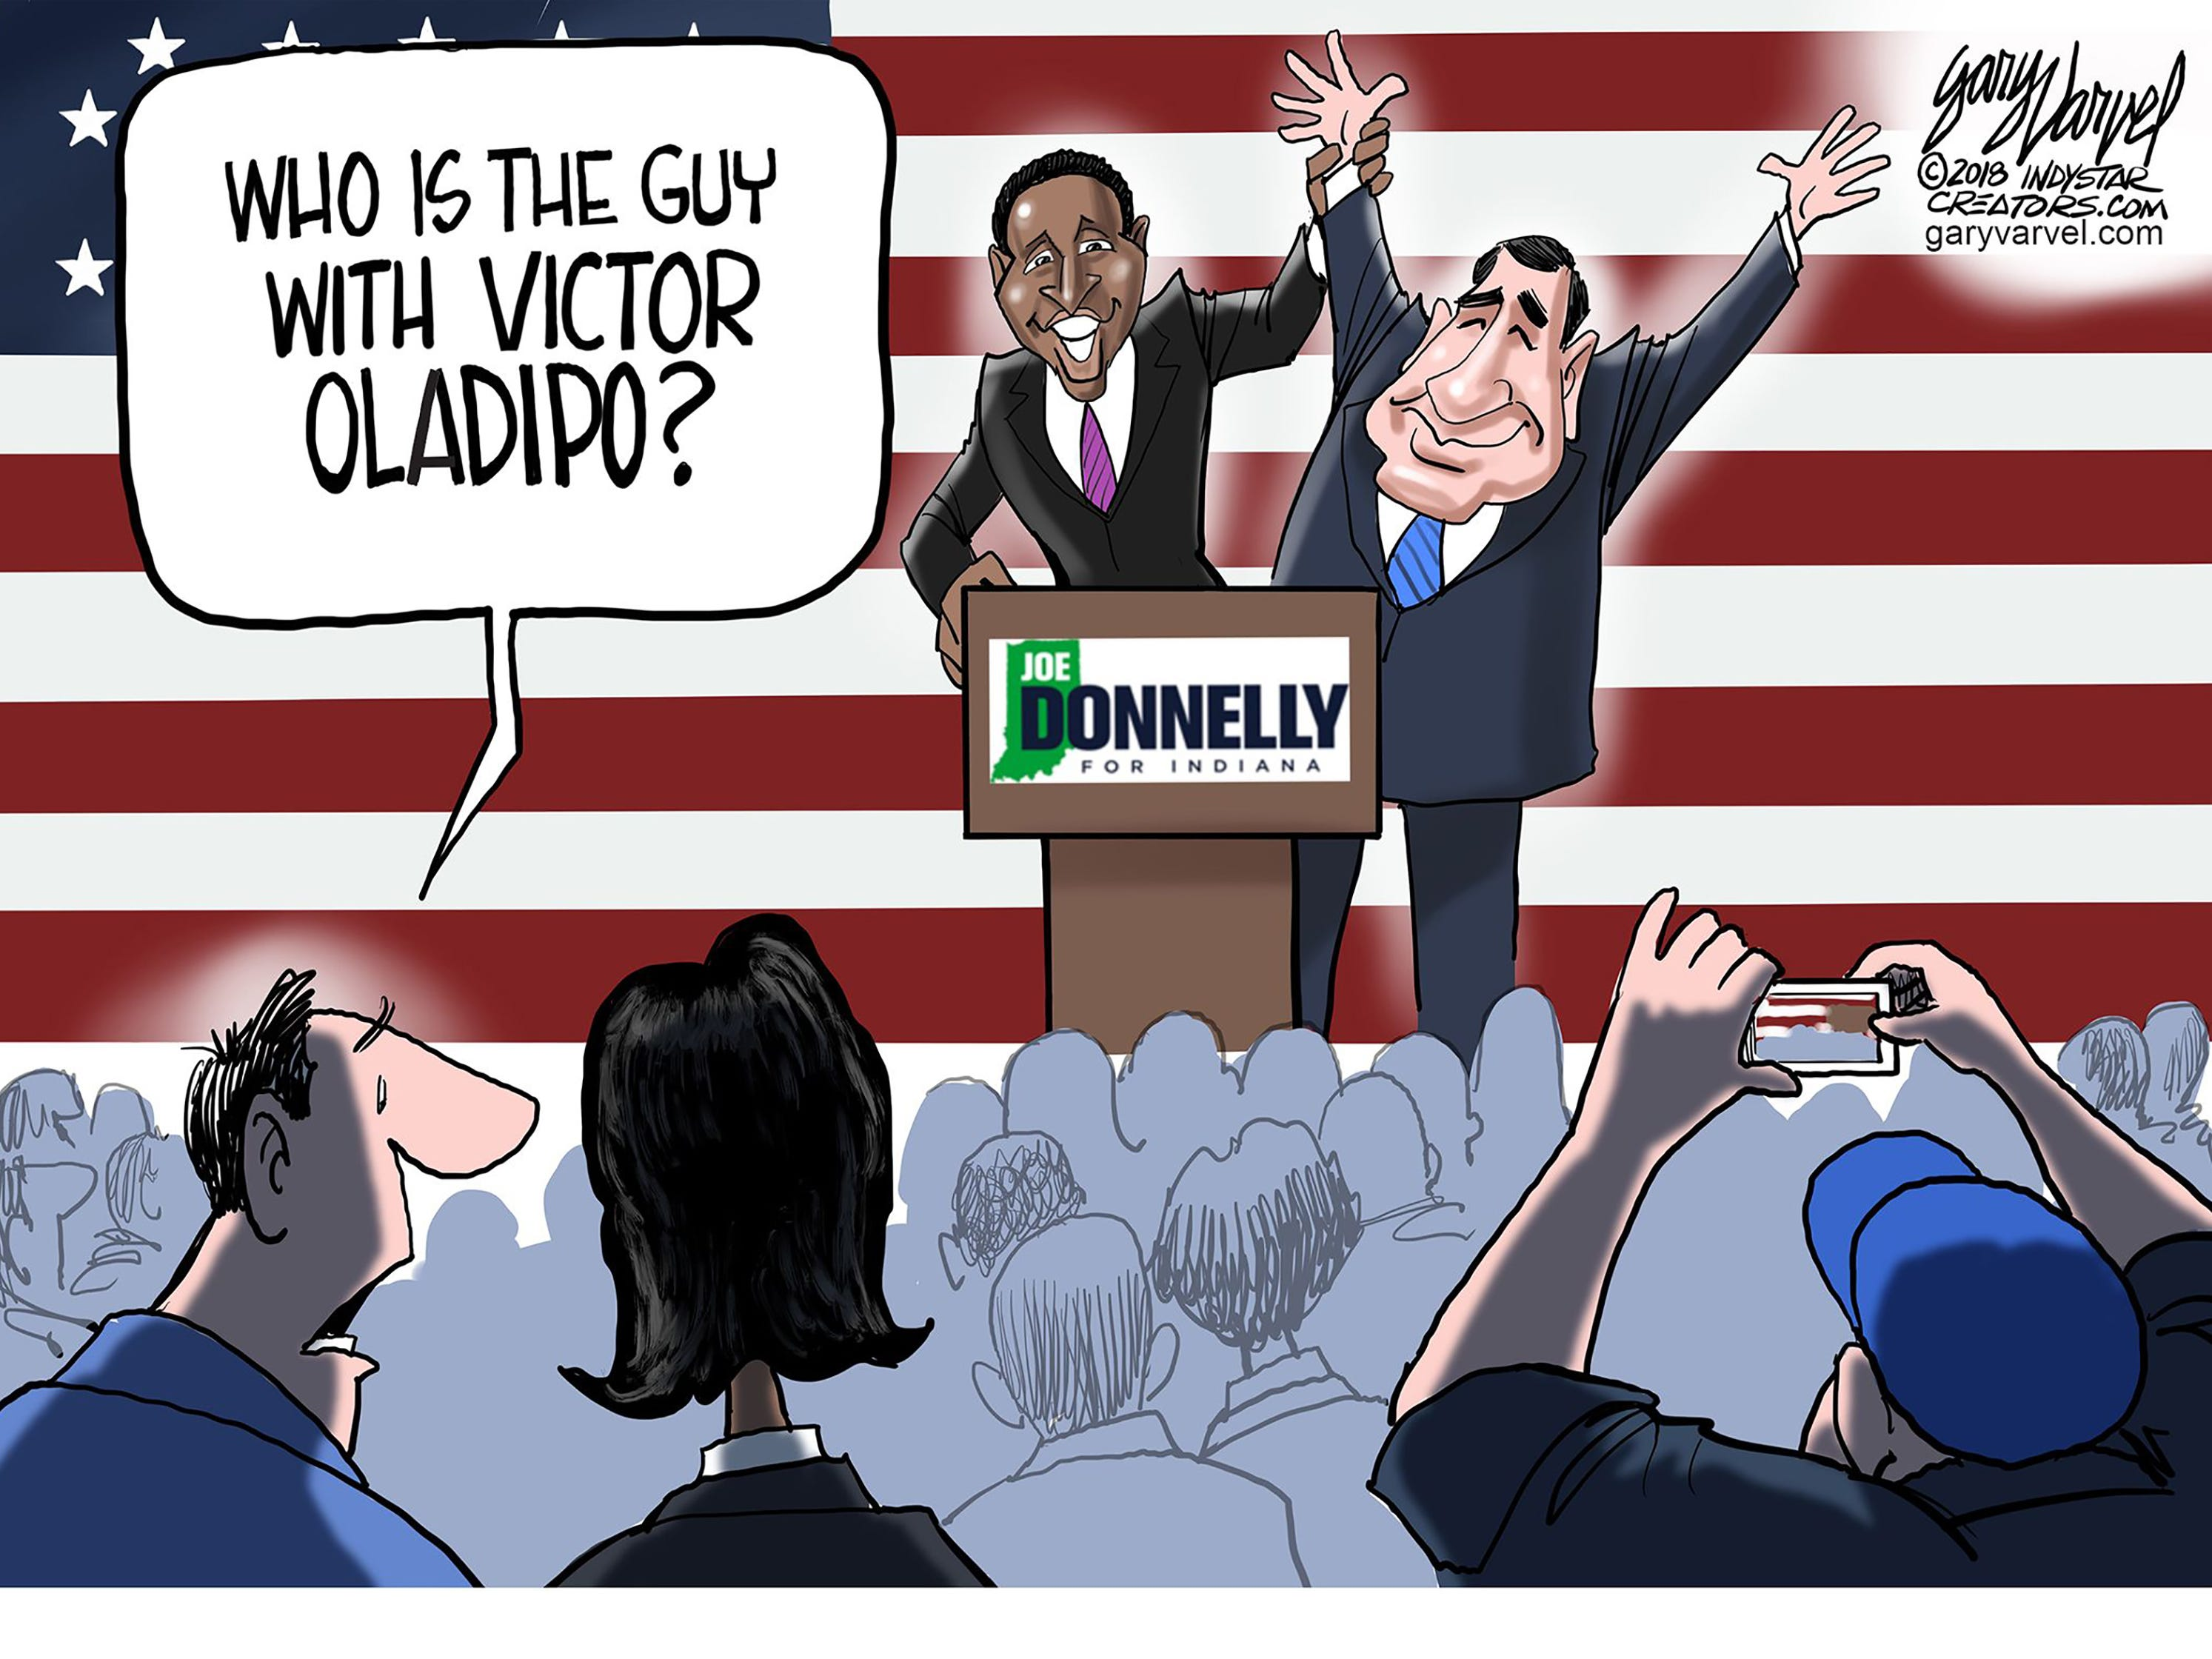 The cartoonist's homepage, indystar.com/opinion/varvel